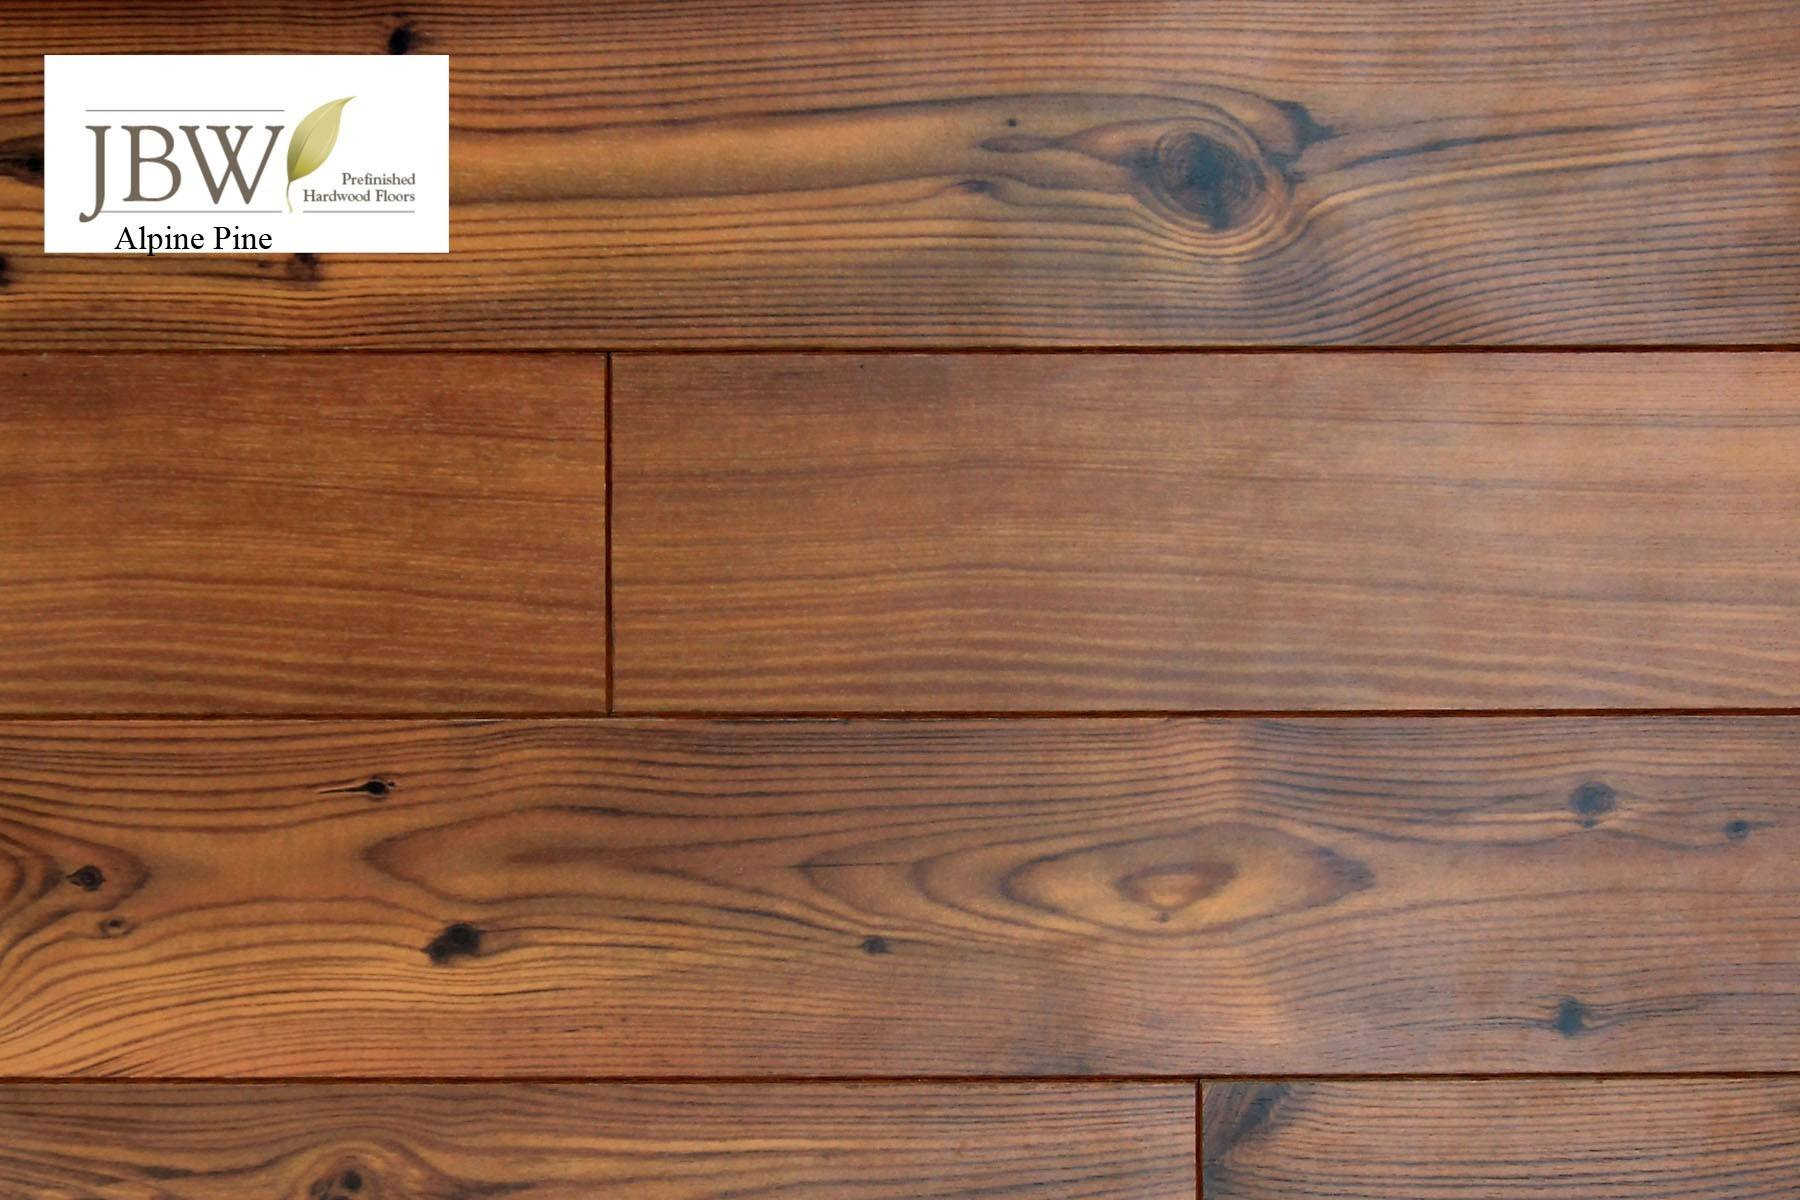 diy sand and stain hardwood floors of find the best cheap hardwood flooring near me trends best flooring pertaining to wood flooring panies near me stock hardwood flooring stores near me unique 11 best od floors